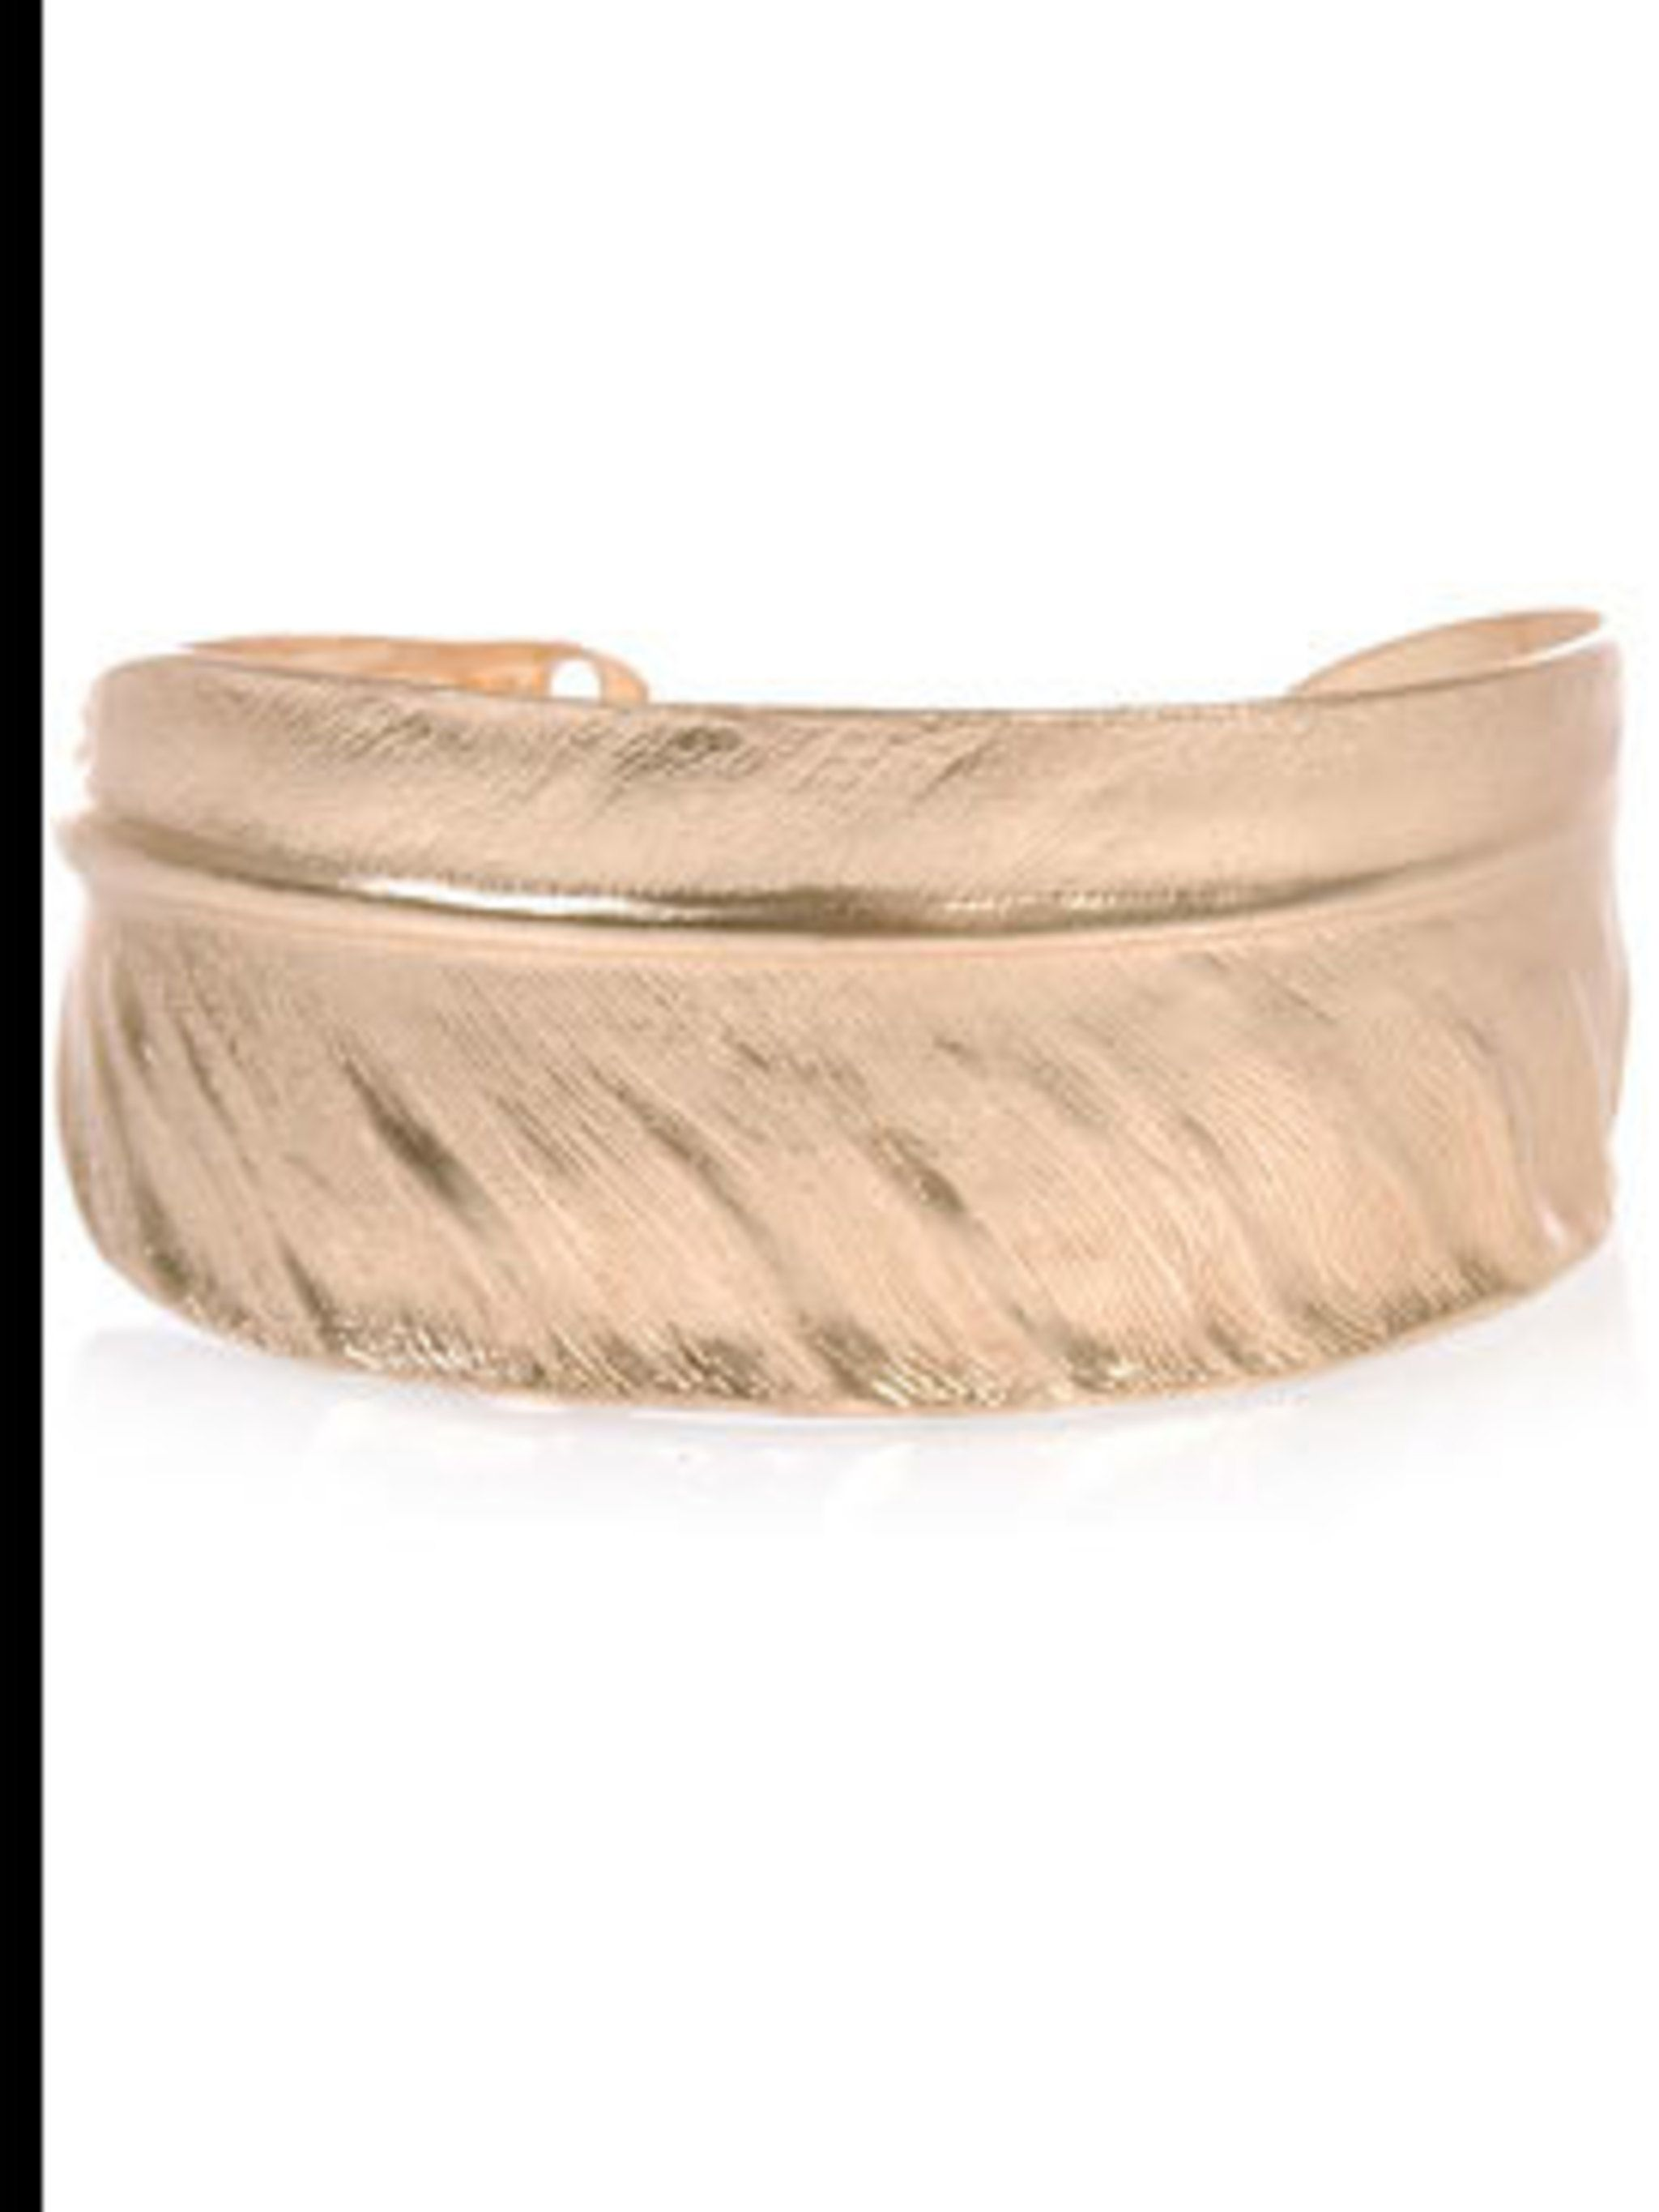 "<p>Gold-plated feather cuff, £52, by Sowat at <a href=""http://www.farfetch.com/shopping/women/search/item10016539.aspx"">Farfetch</a></p>"